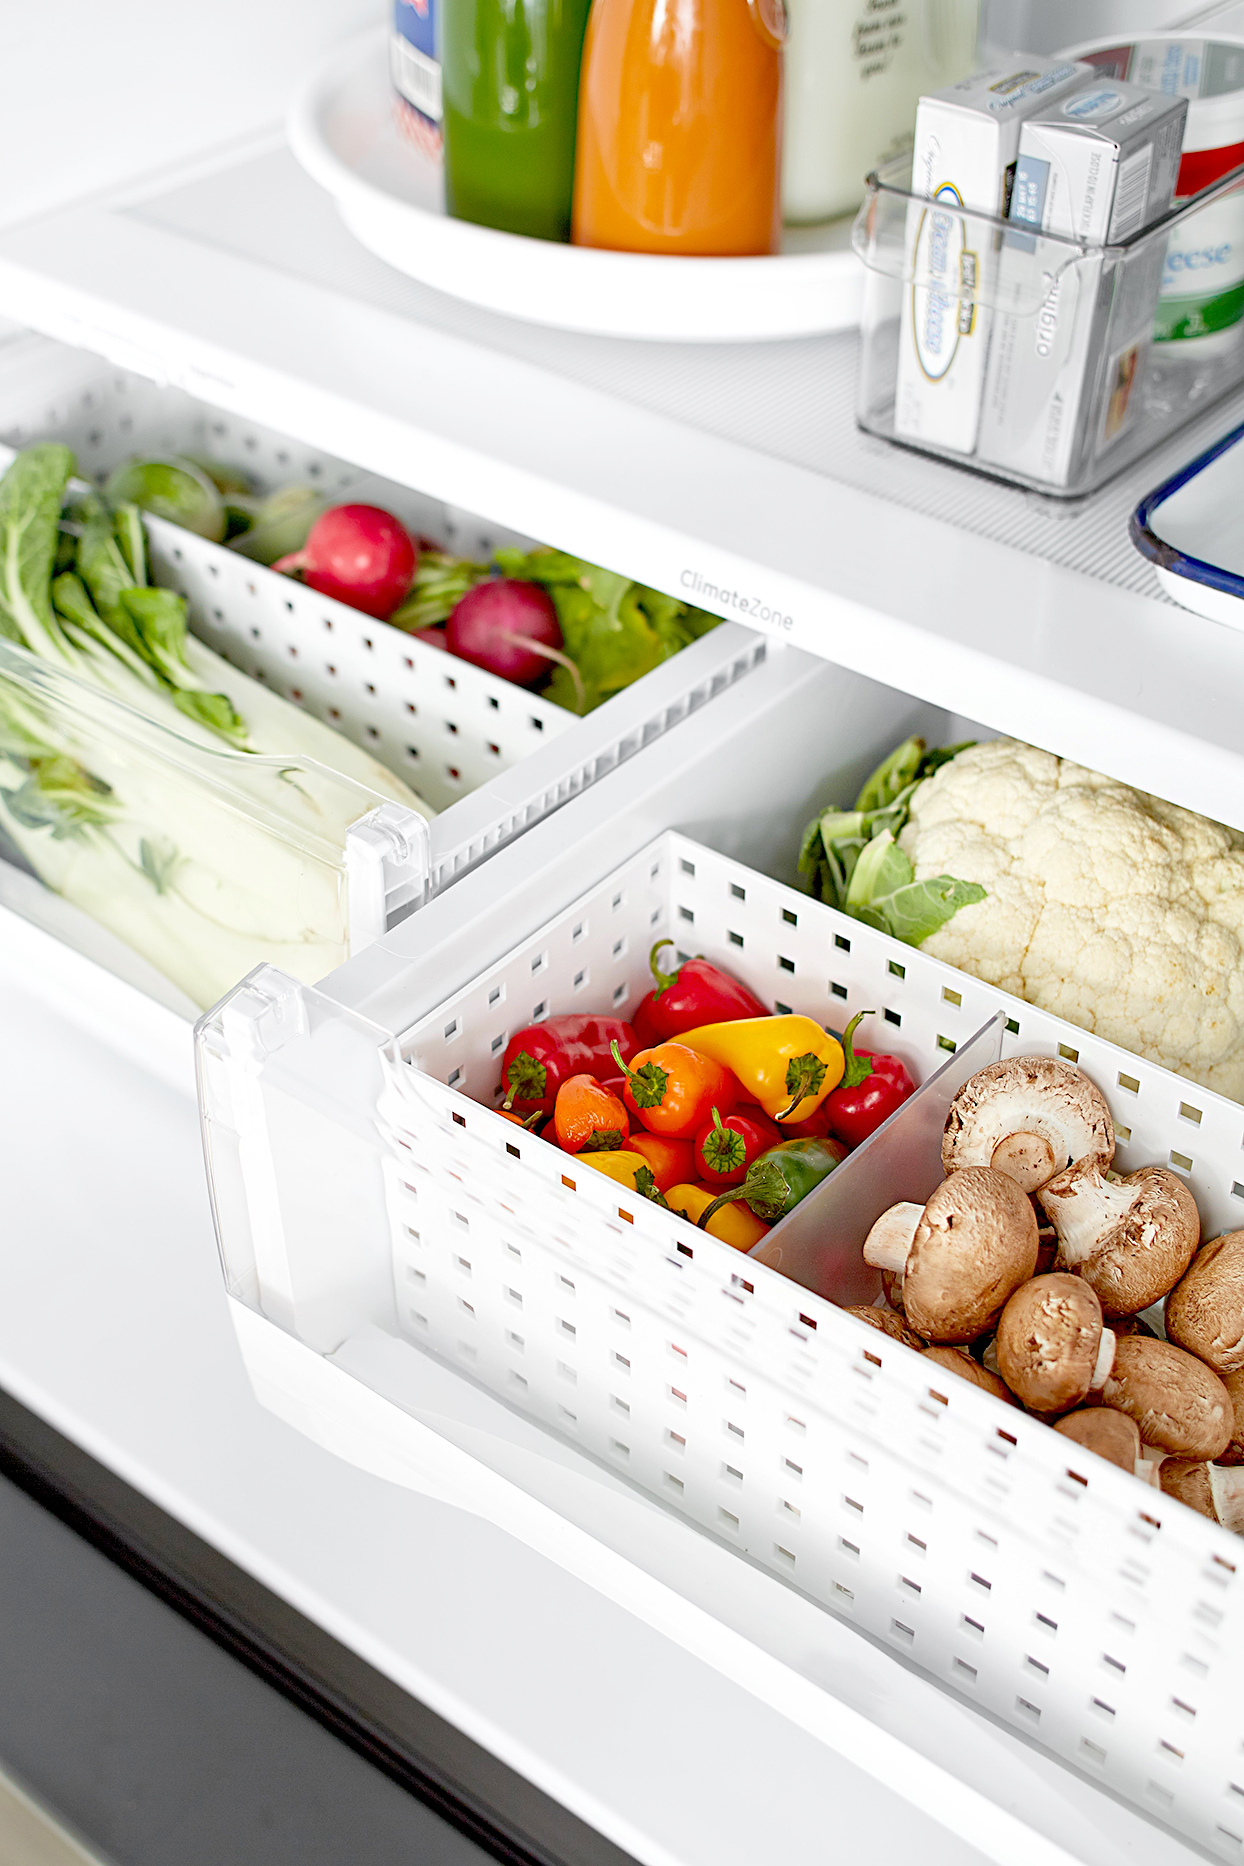 Refrigerator with variety of vegetables